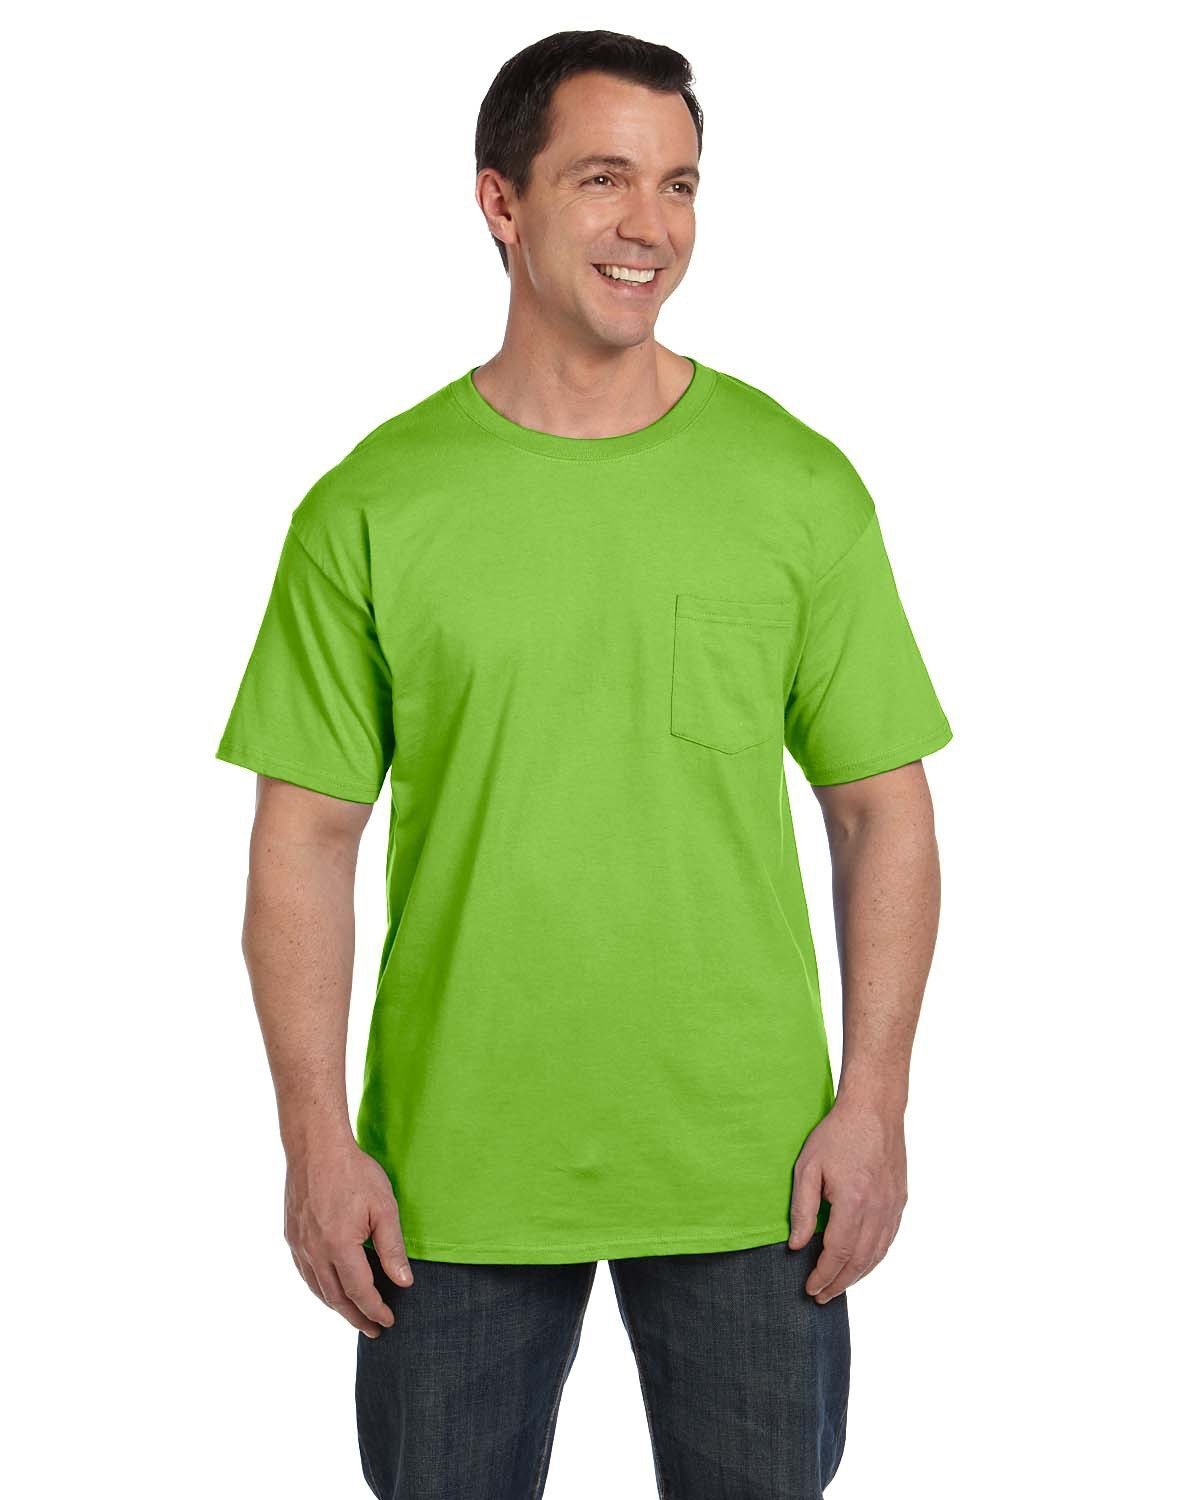 Hanes Adult Beefy-T® with Pocket LIME